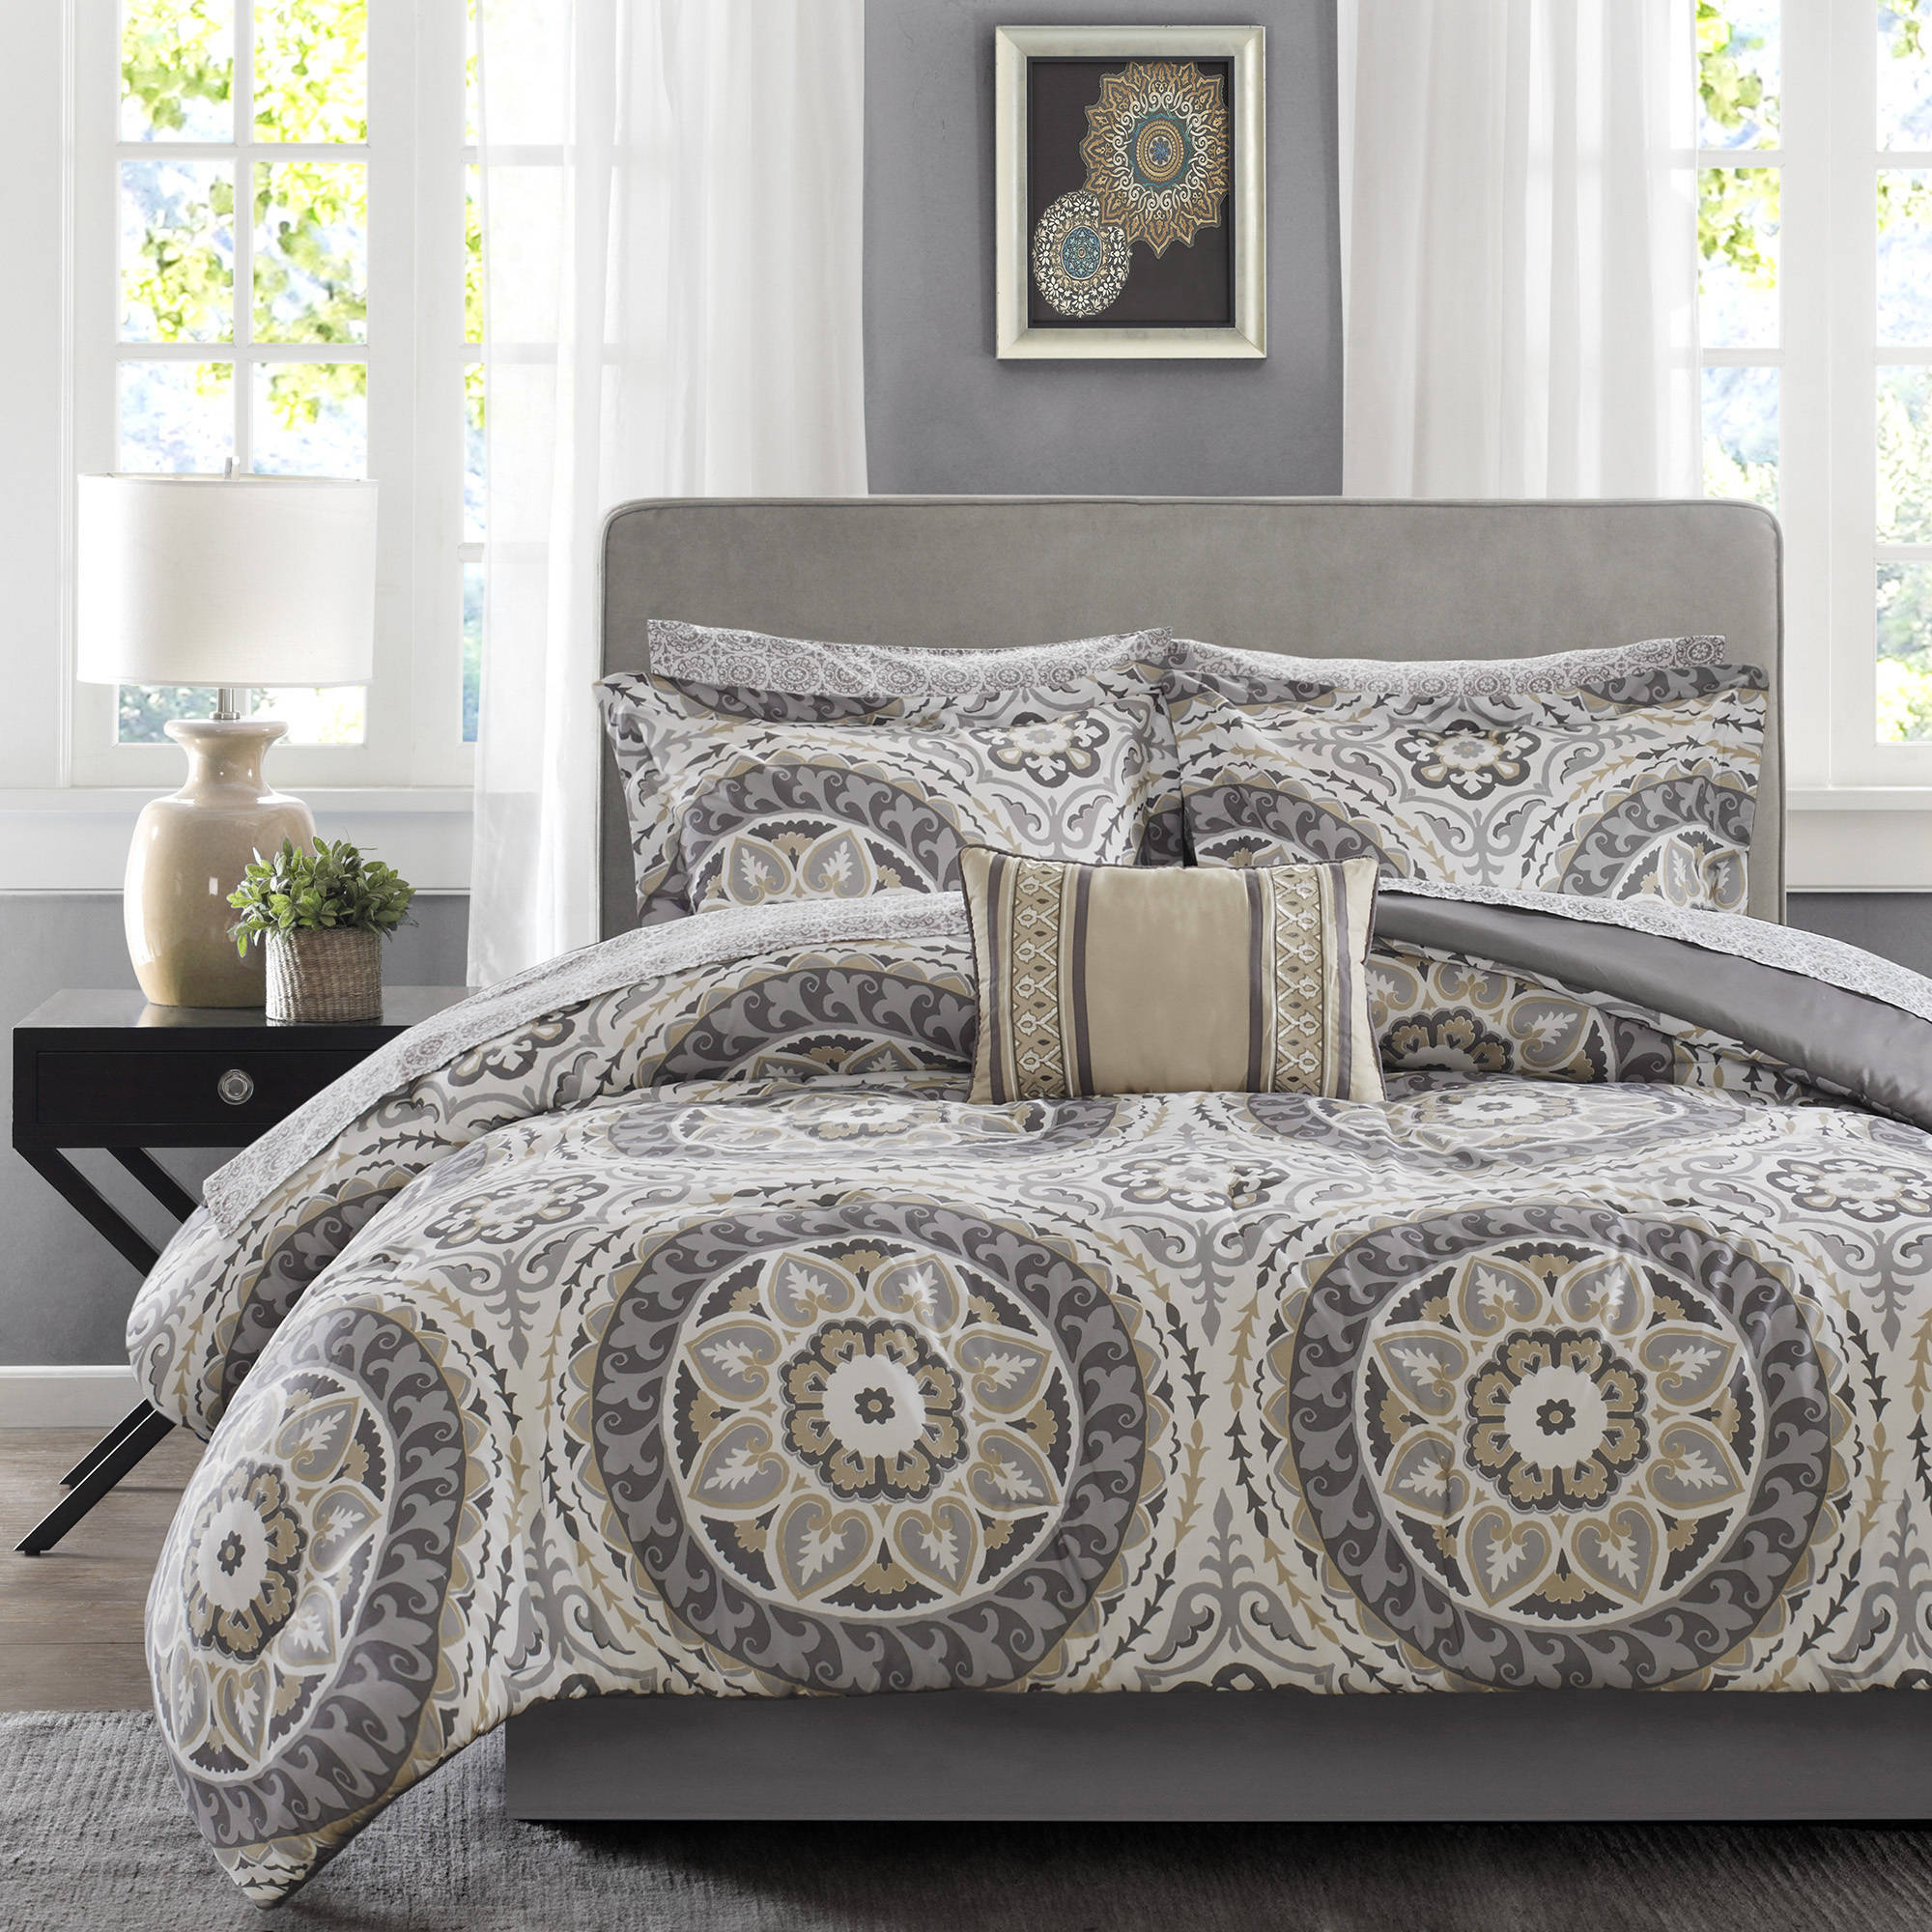 piece set silver chic silk bedding jacquard pin le faux comforter mans design home floral vintage